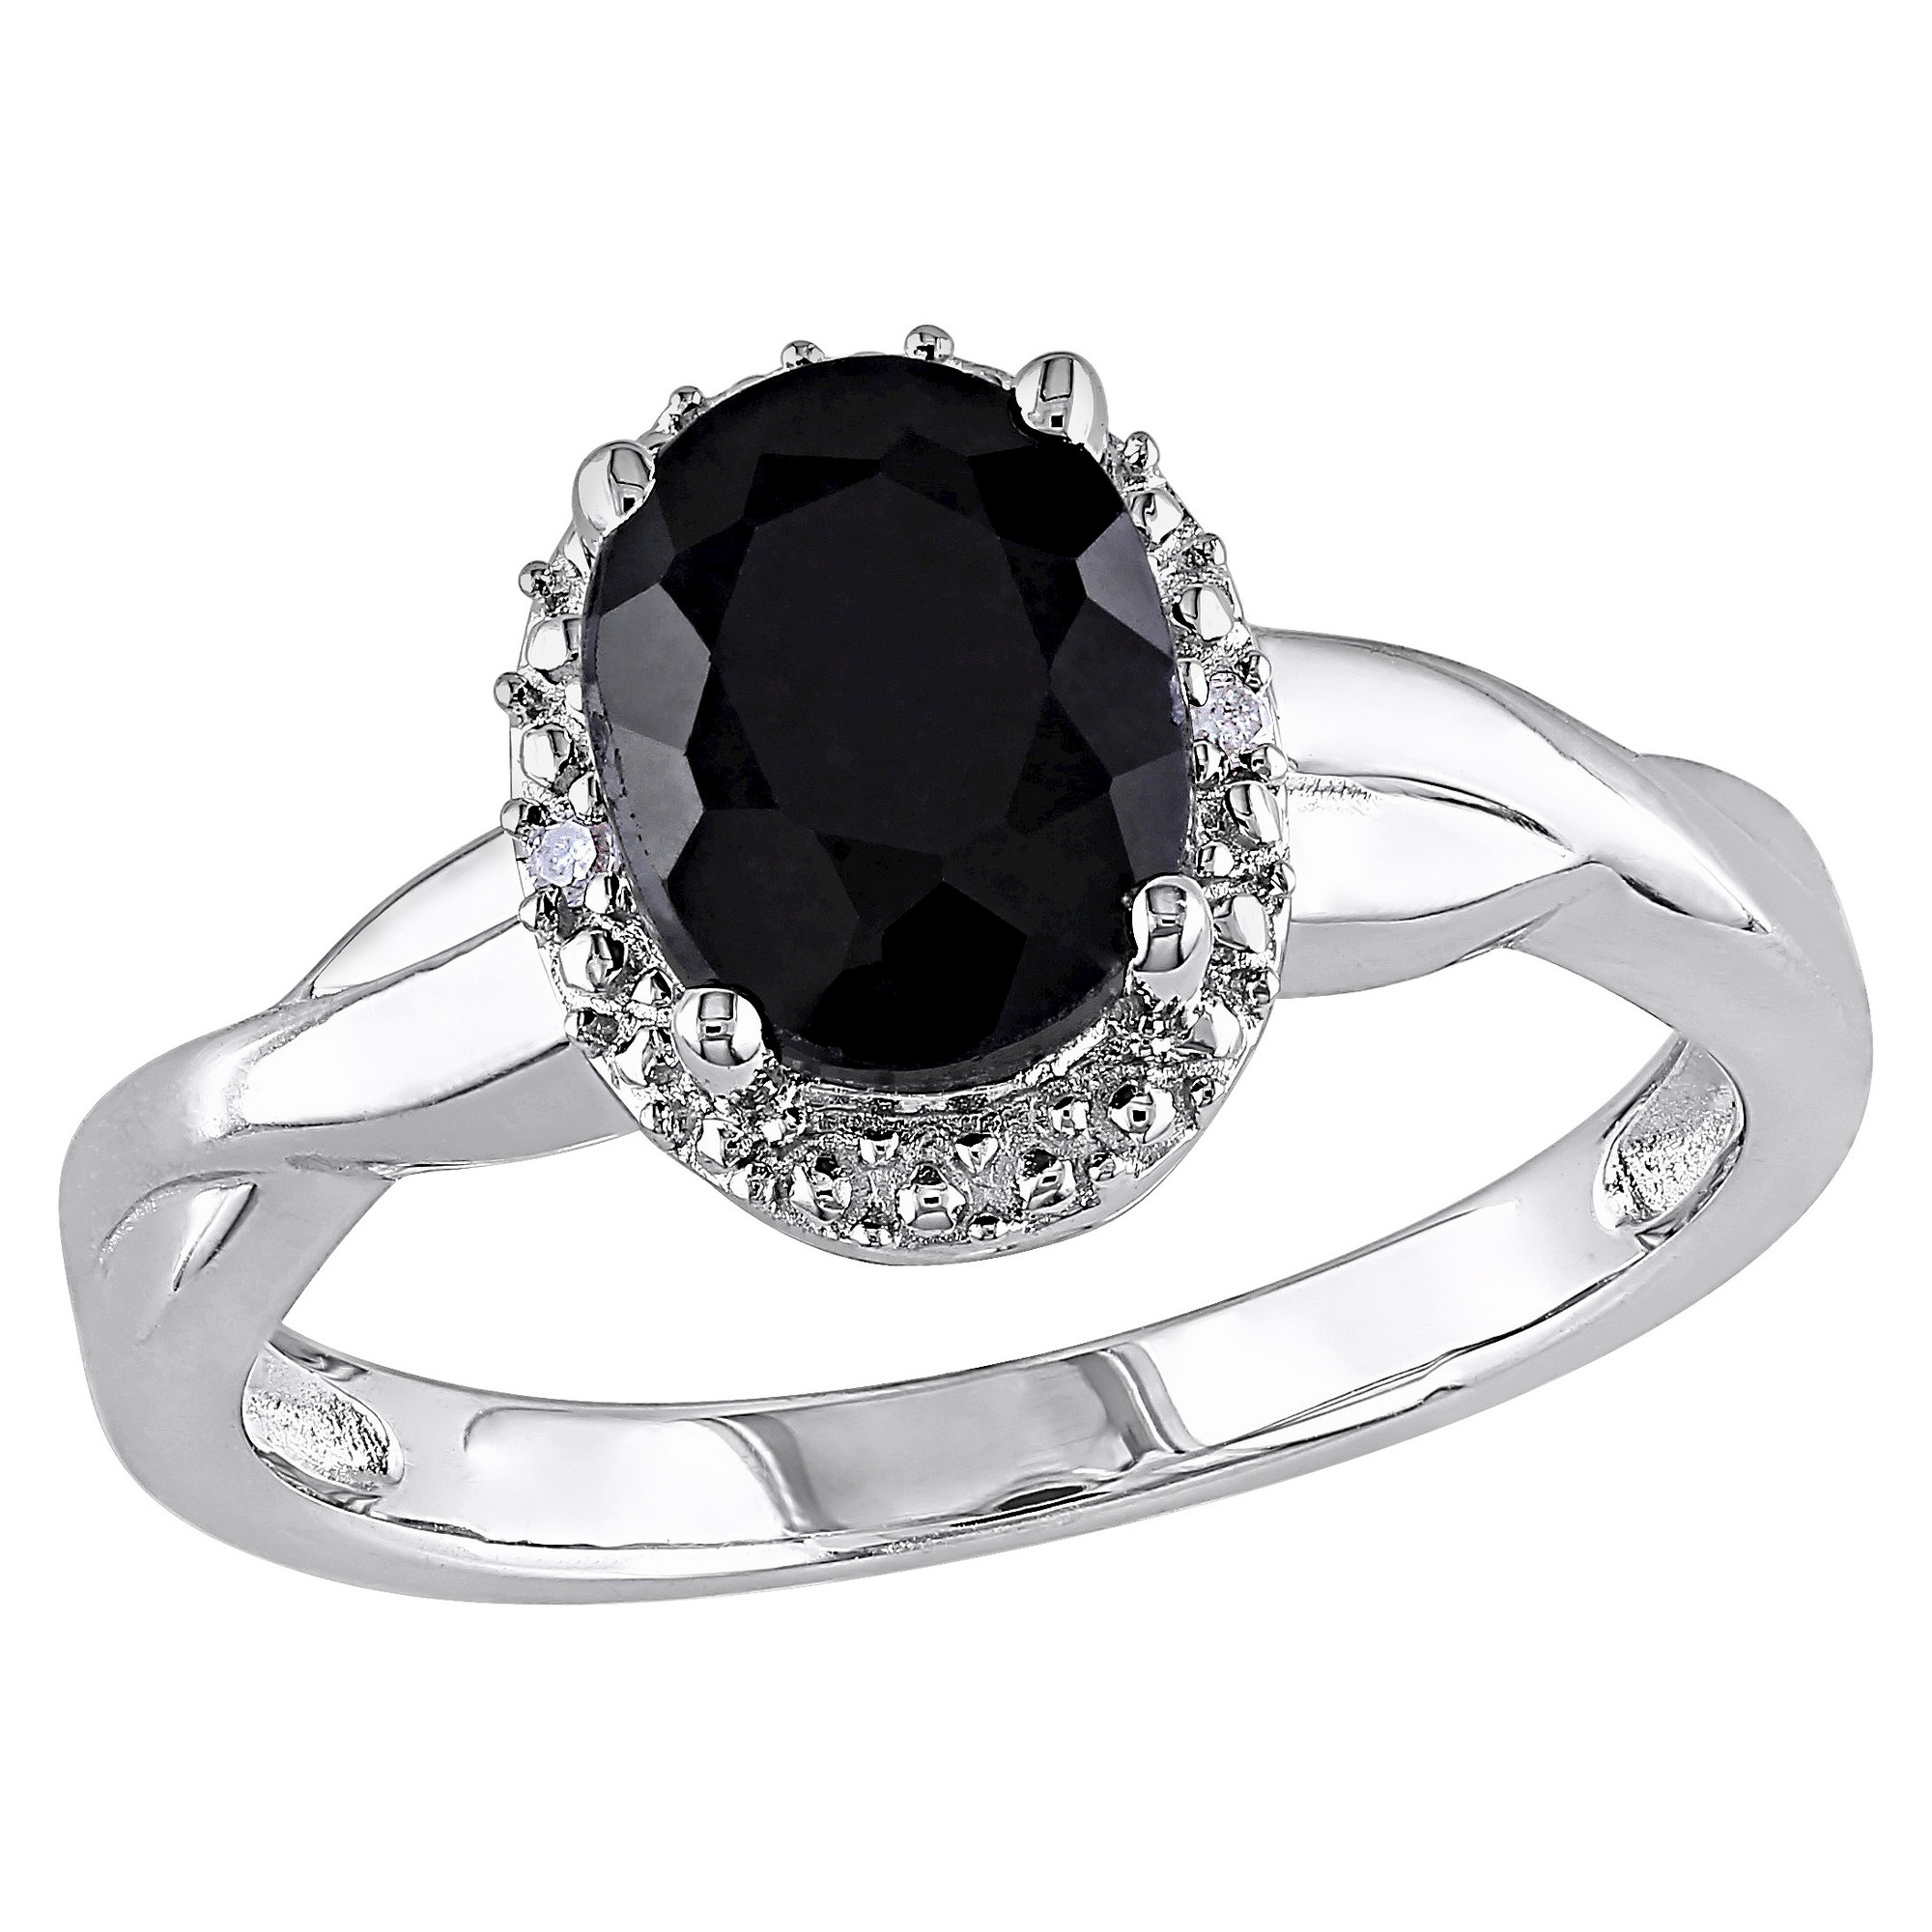 1 3 5 Ct T W Oval Black Sapphire And 0 01 Ct T W Diamond Ring Silver I3 9 Black Black Sapphire Ring Sapphire Diamond Ring Black Rings